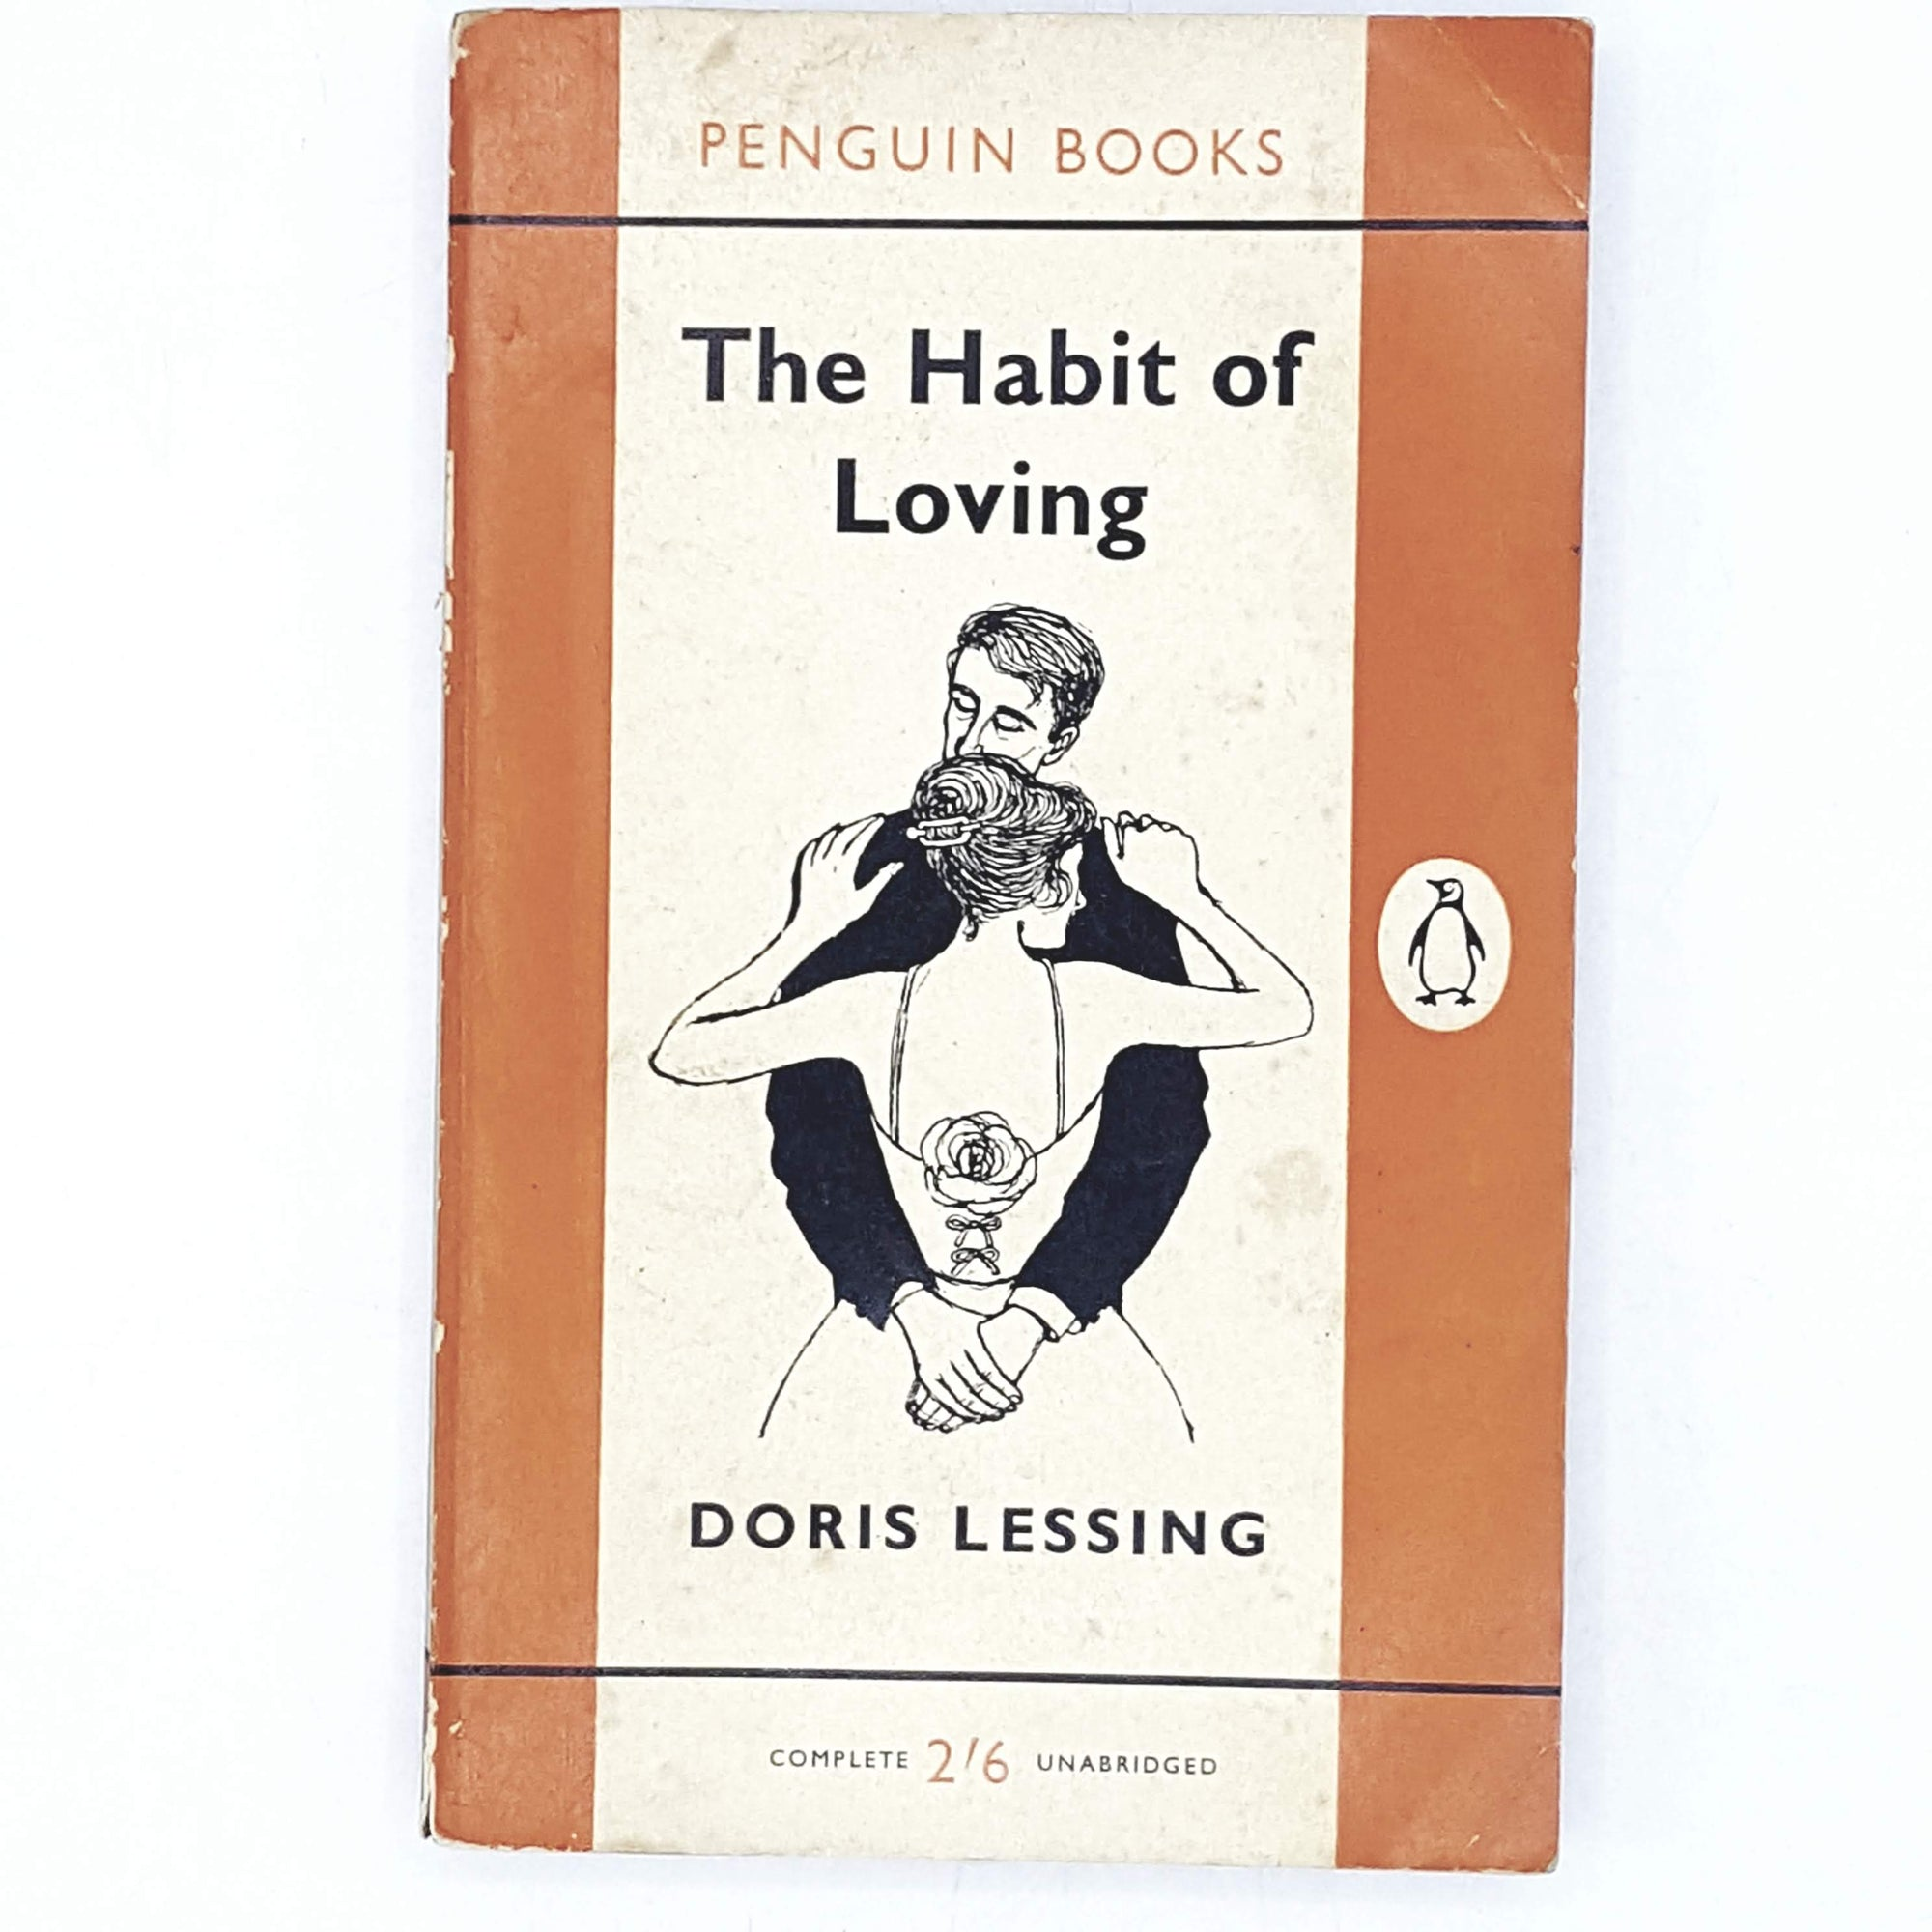 First Edition The Habit of Loving by Doris Lessing 1960